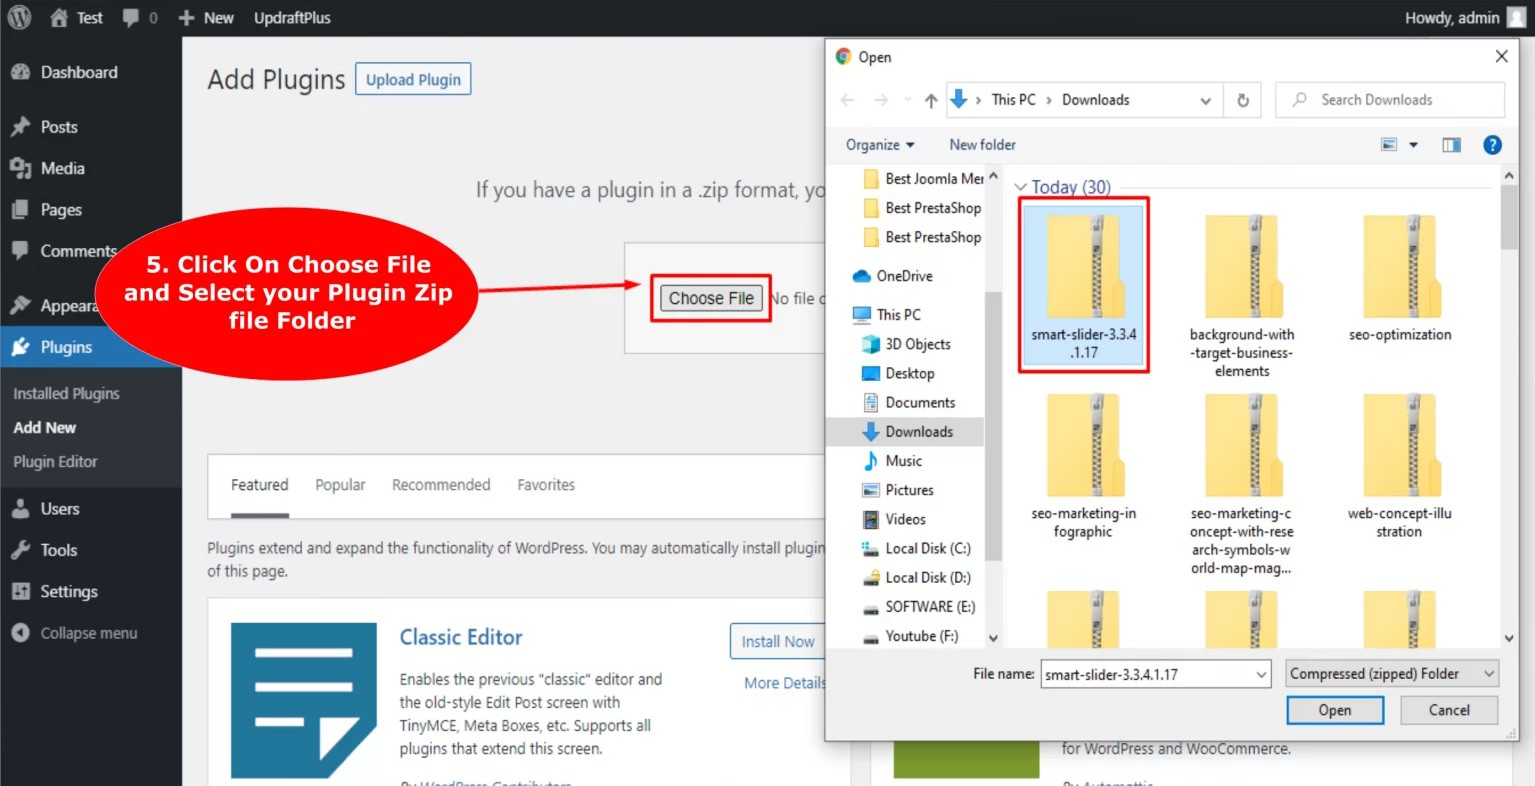 upload the WordPress plugin .zip file from your local storage